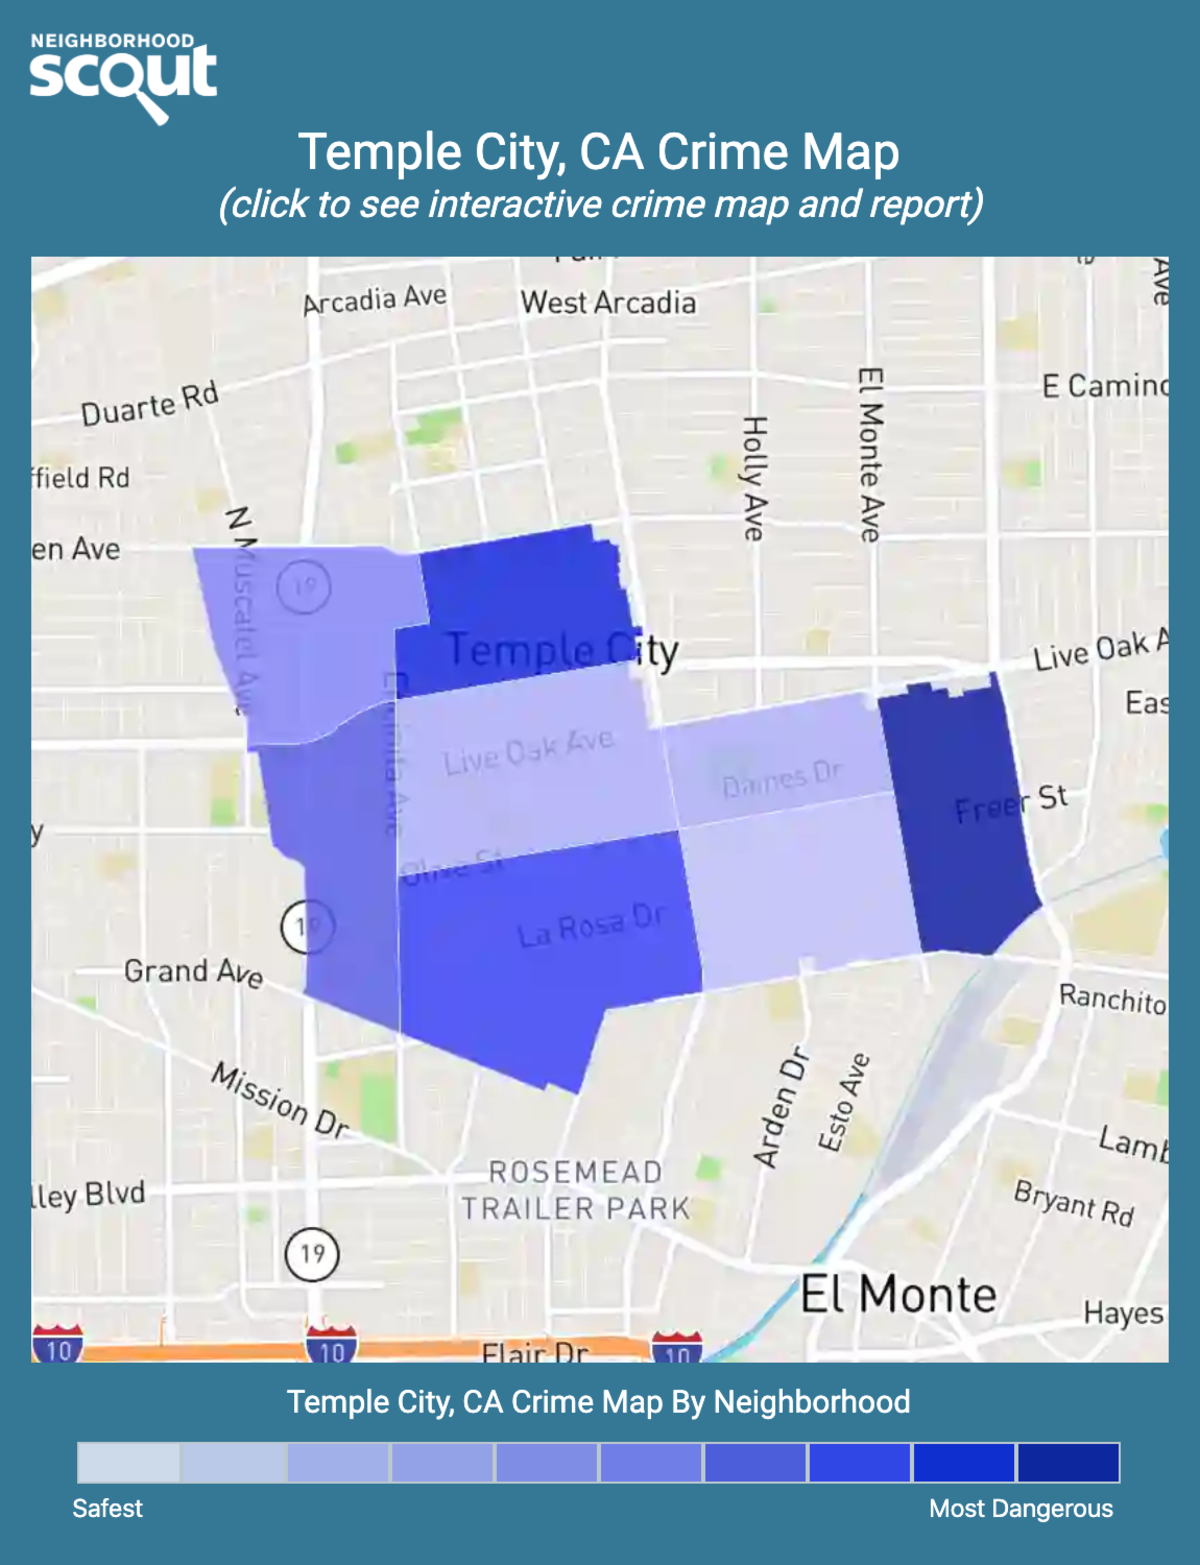 Temple City, California crime map